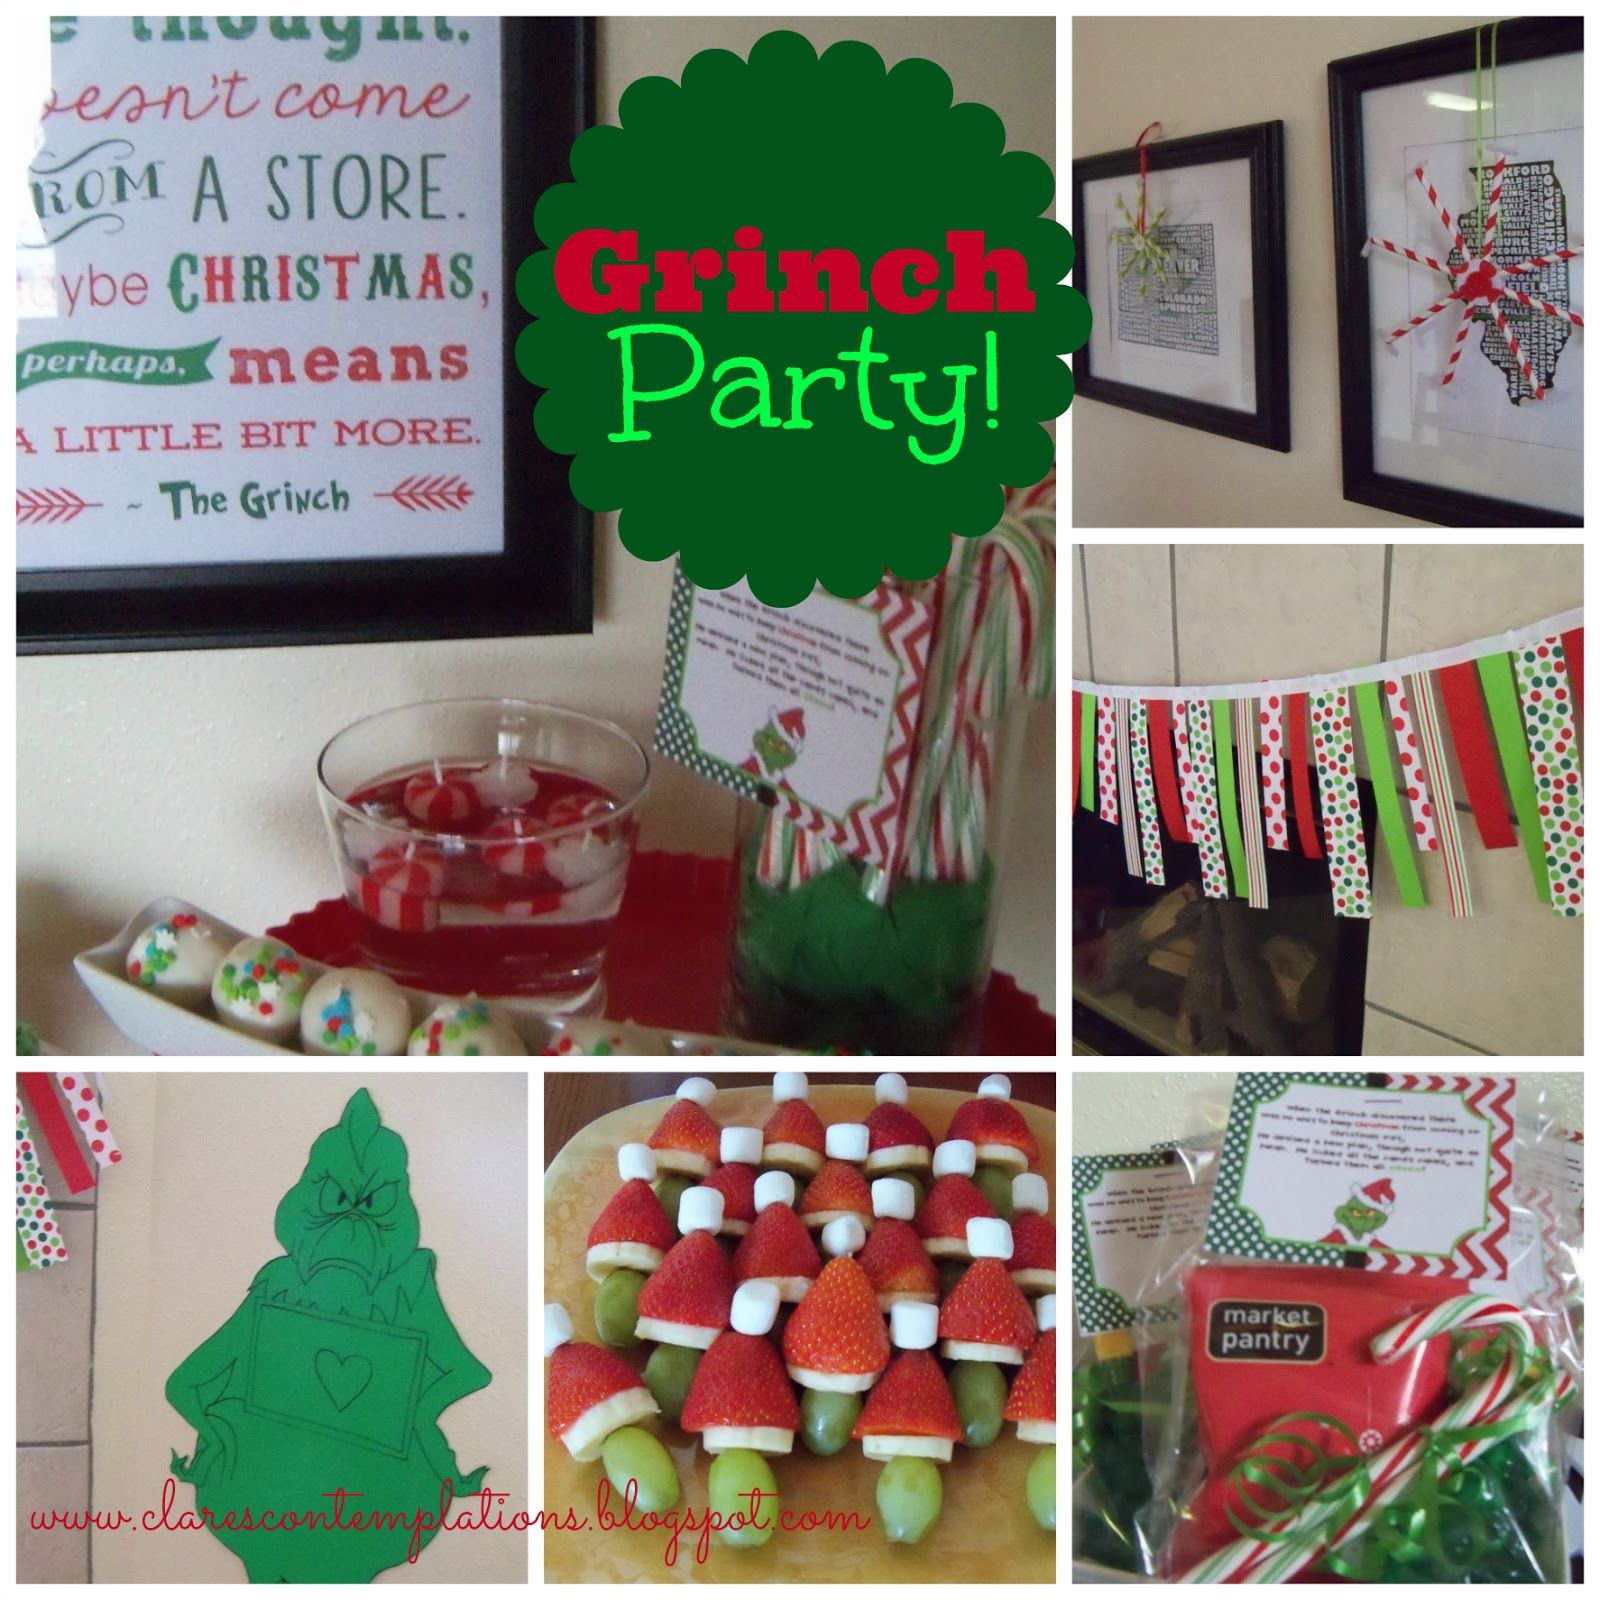 Christmas Party Ideas For Friends Part - 15: Great Grinch Party-lots Of Ideas For A Low-key, But Really Fun Kidsu0027 Christmas  Party! Nothing Complicated Or Expensive, But Your Kids And Their Friends  Will ...